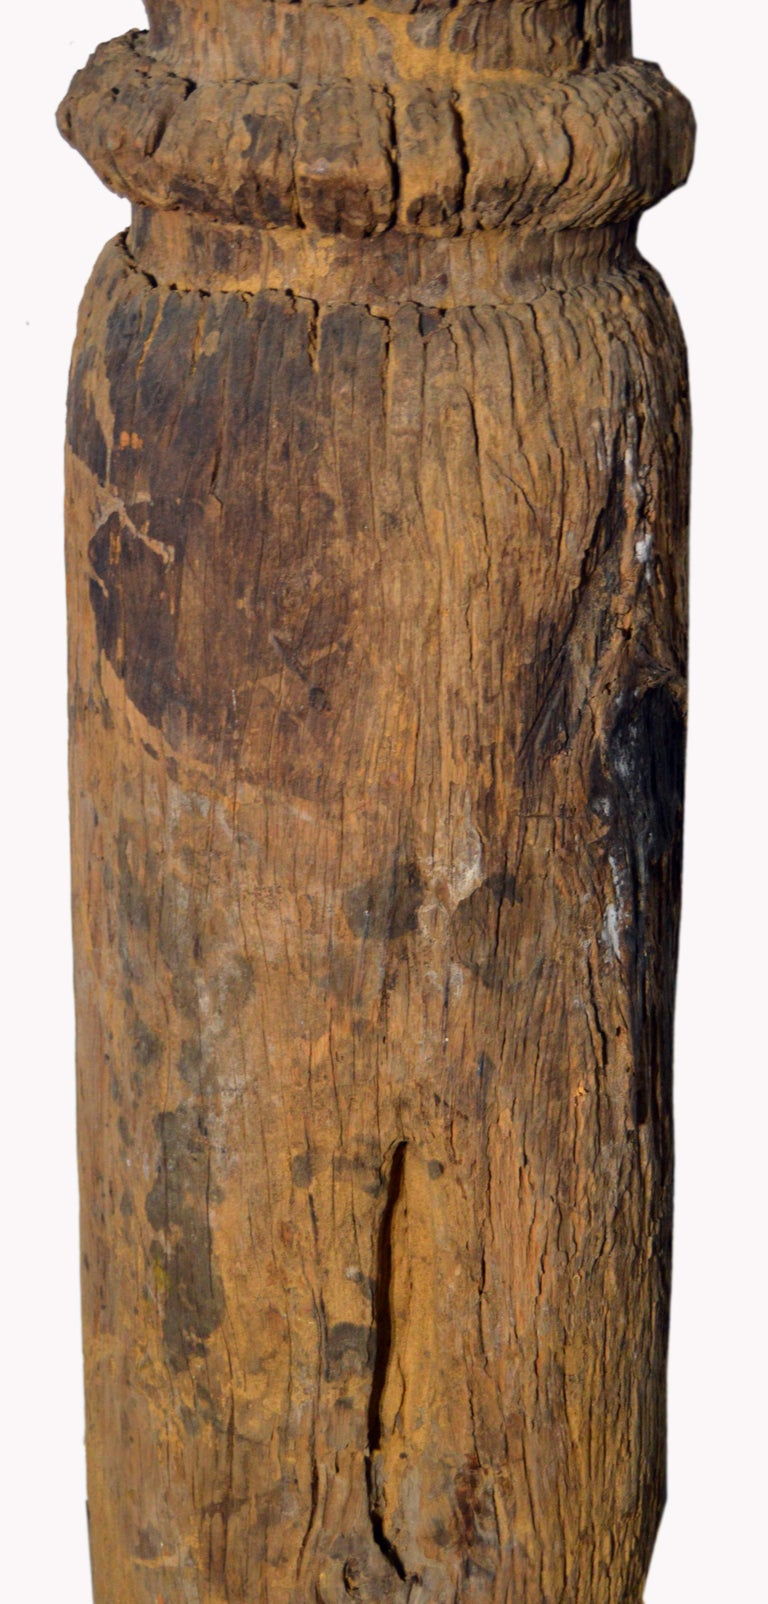 A 19th century rustic hand-carved Thai pole from the mountainous city of Chiang Mai, featuring a natural patina. Born in northern Thailand, this pole adopts a cylindrical shape and stands on two legs. The top features a baluster detail and two round